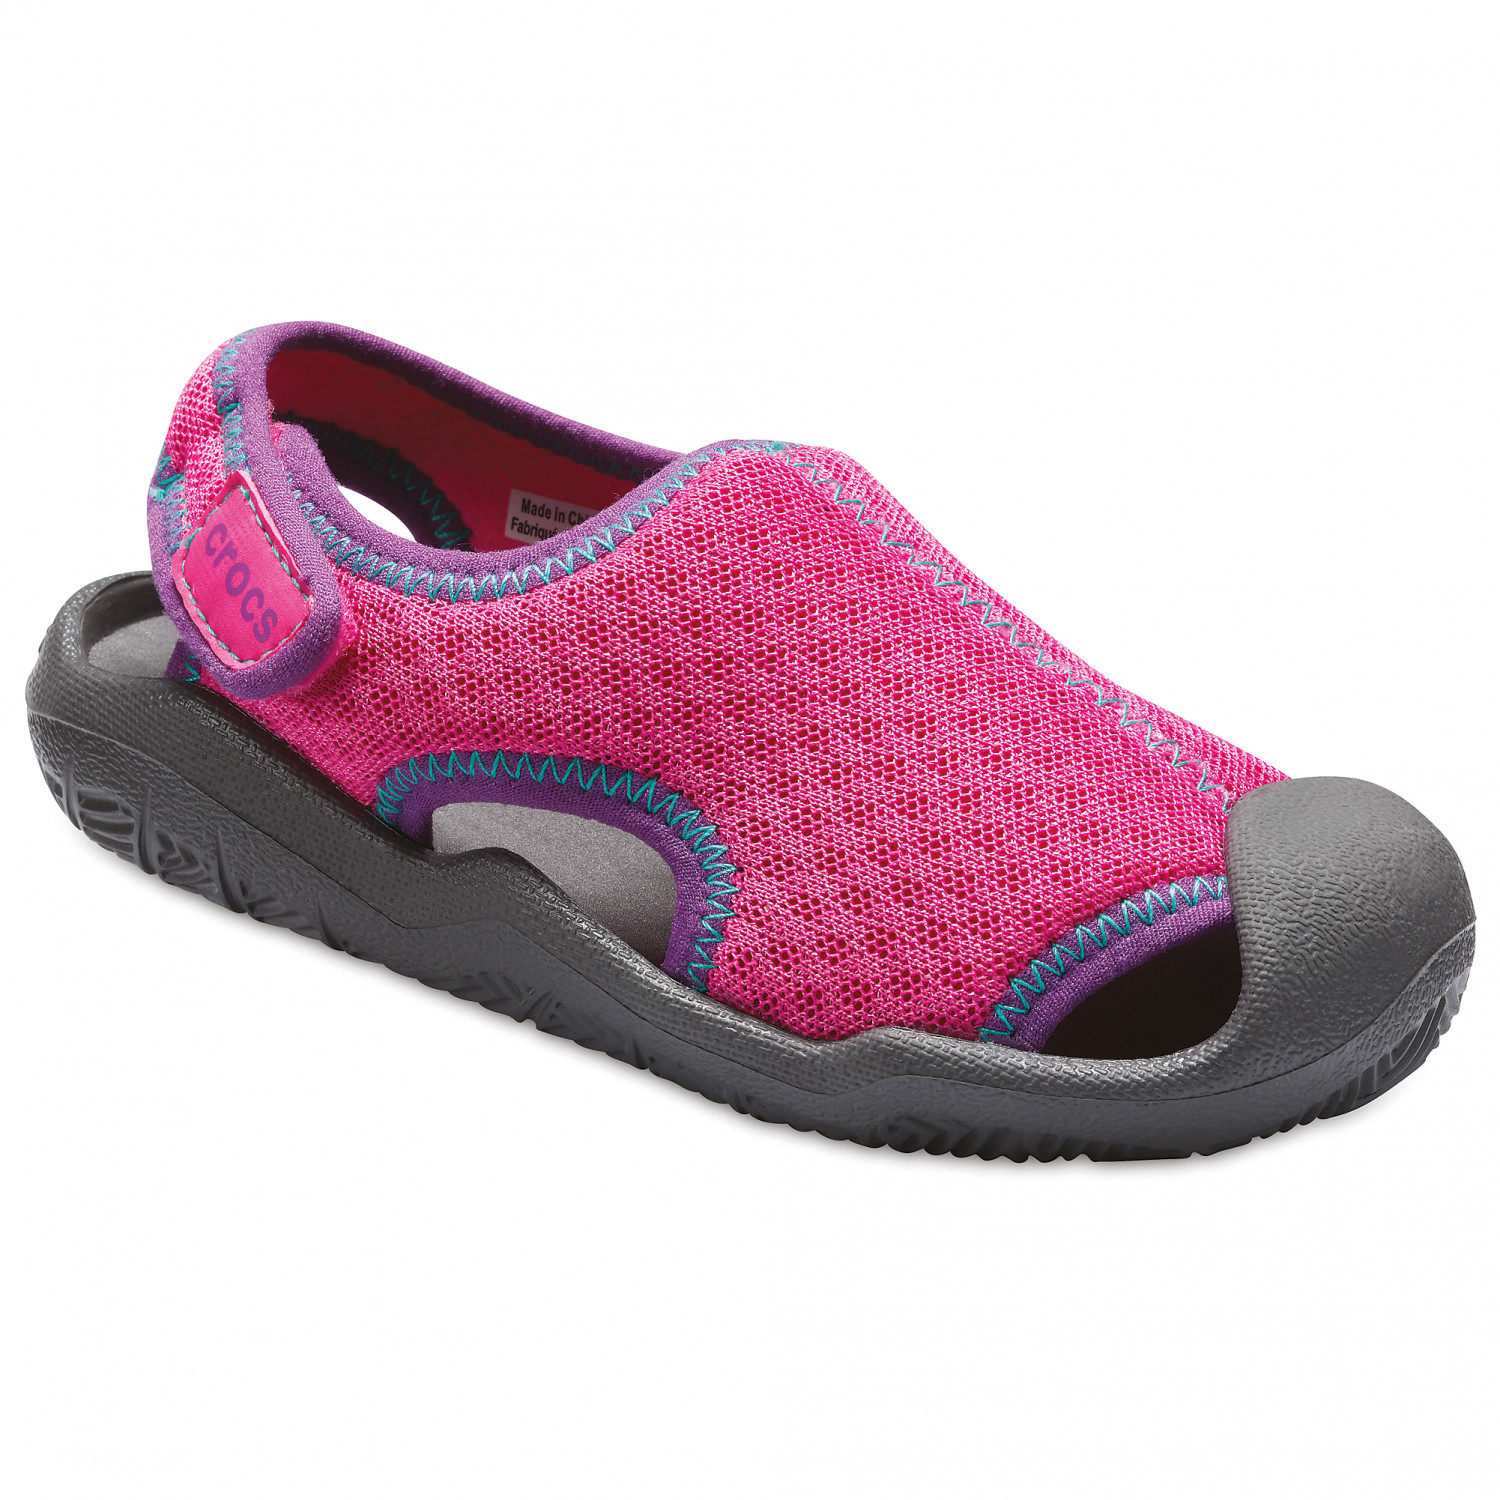 the best attitude a1a22 86191 Crocs - Kid's Swiftwater Sandal - Sandalen - Neon Magenta / Slate Grey |  C11 (US)